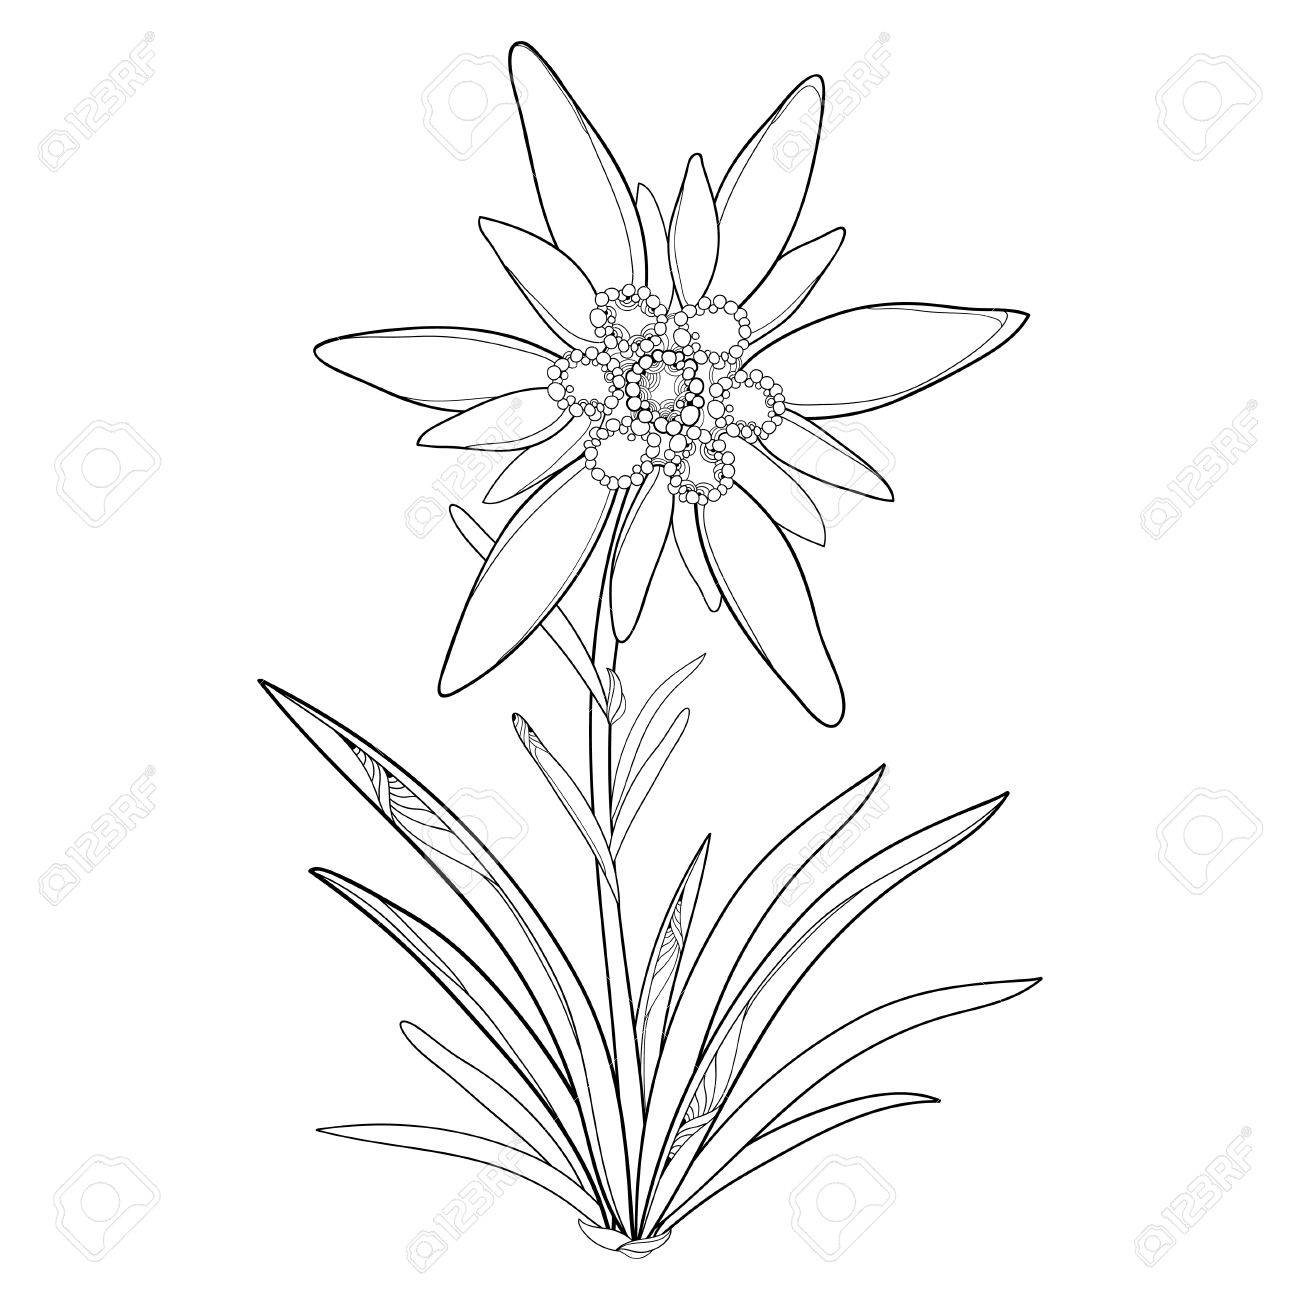 1300x1300 Outline Edelweiss Or Leontopodium Alpinum. Flower And Leaves